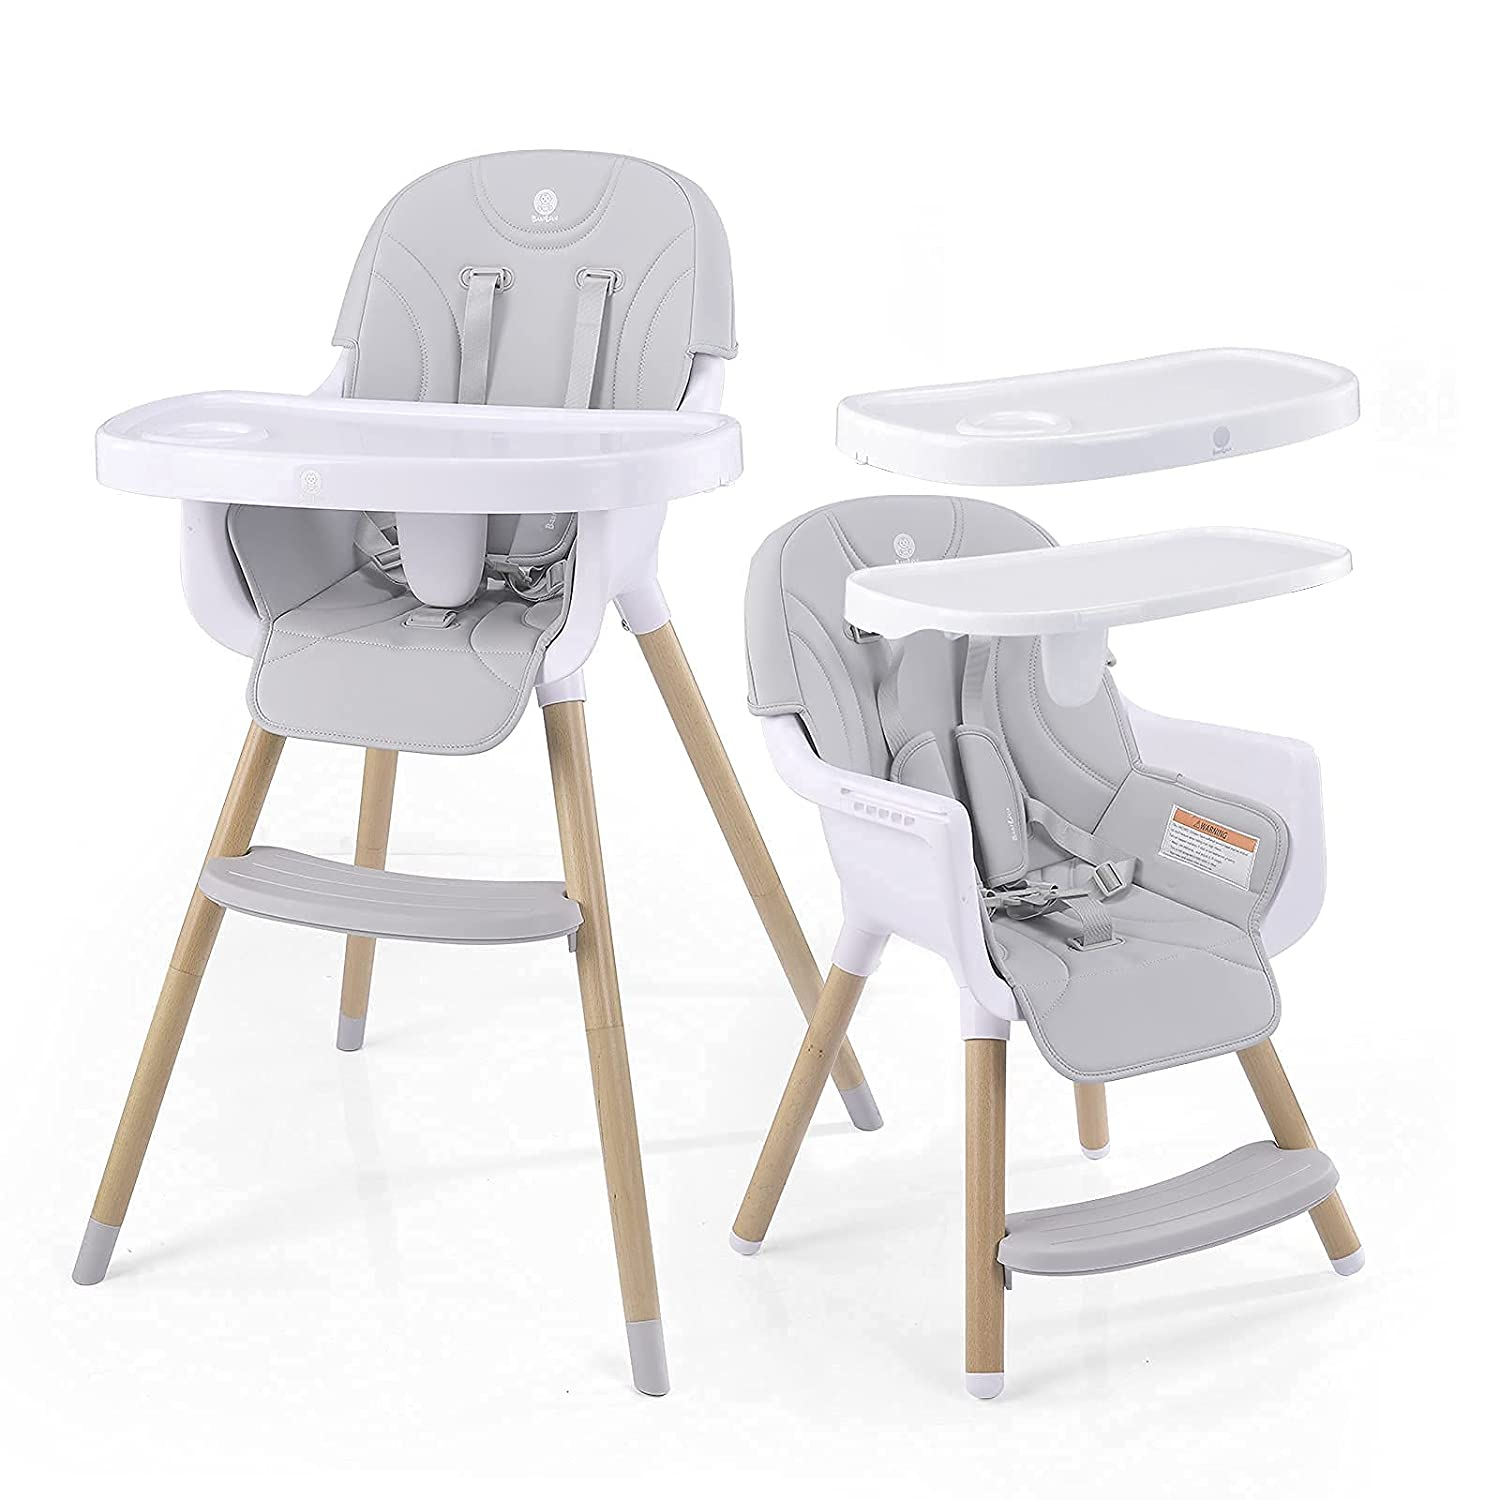 Baby High Chair, 3-in-1 Convertible ASTM Approved Infant Adjustable Feeding Dining Chair   2 Big Removable Easy to Clean Dishwasher Safe Trays,for 6 Mons up to 35 Lb Toddler(Grey)